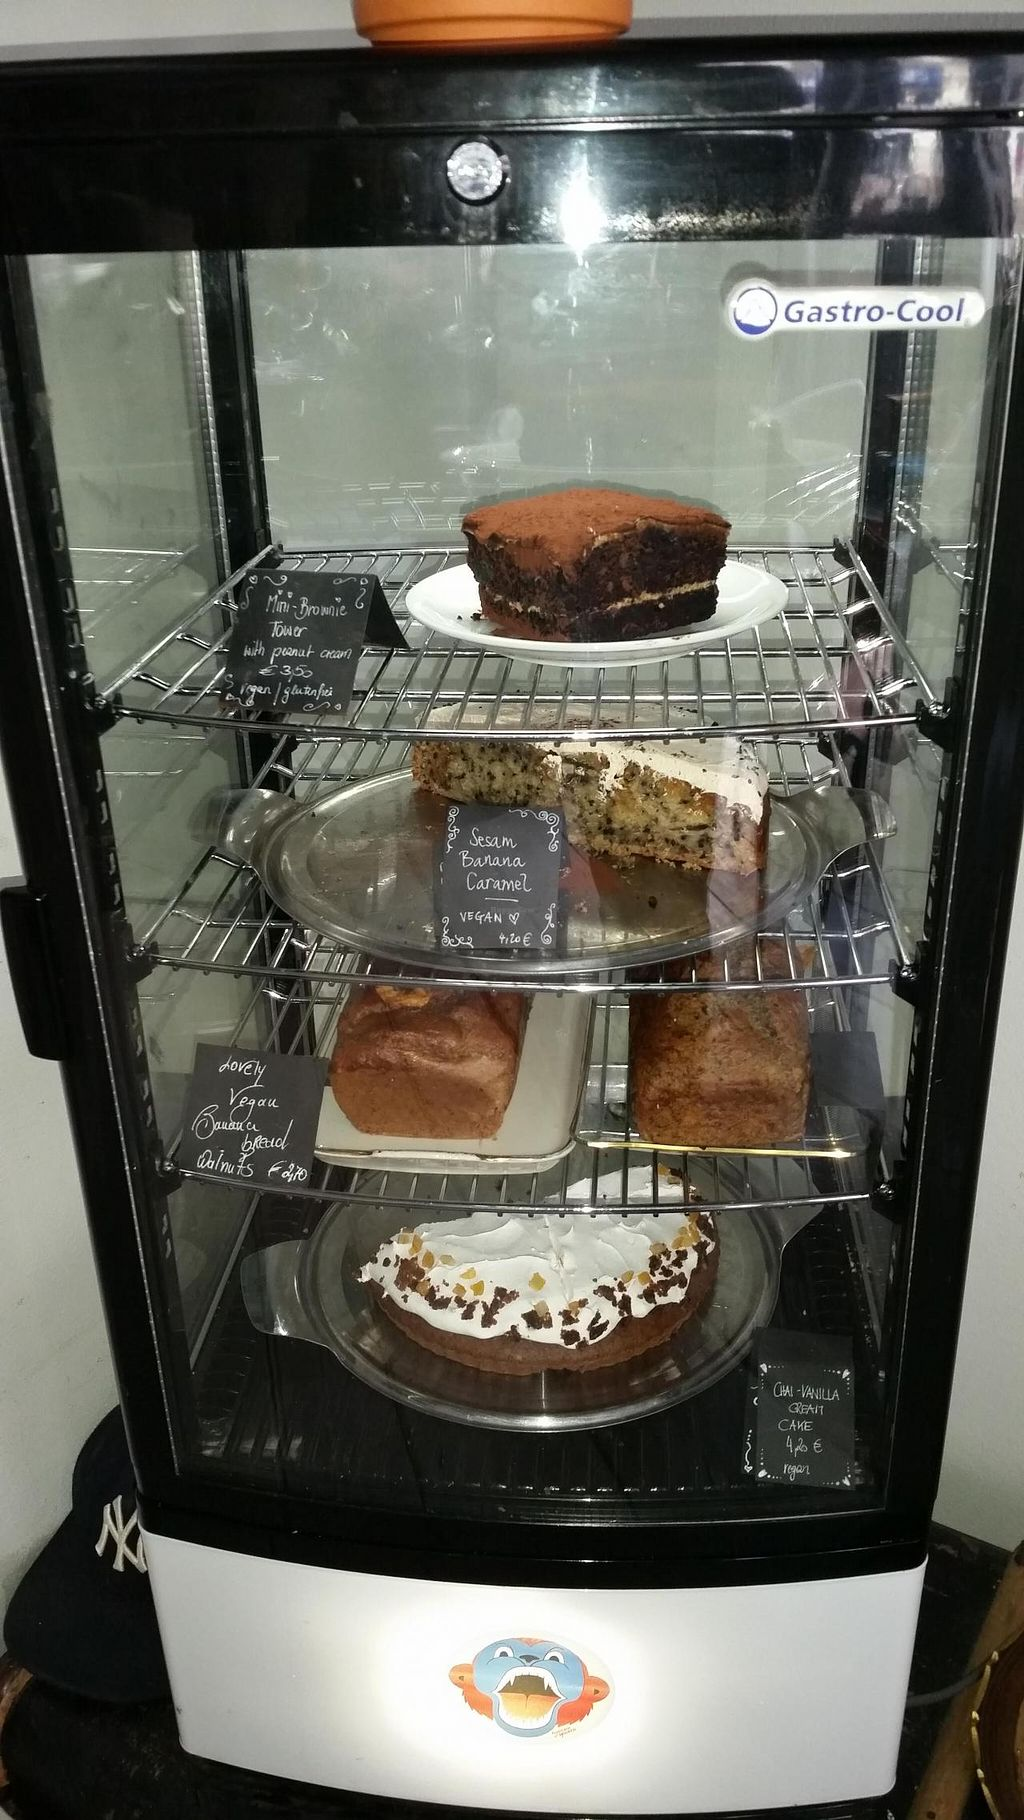 """Photo of CLOSED: Charlie's Vegan Food & Coffee  by <a href=""""/members/profile/autosblindo"""">autosblindo</a> <br/>Cakes <br/> May 2, 2015  - <a href='/contact/abuse/image/50935/100920'>Report</a>"""